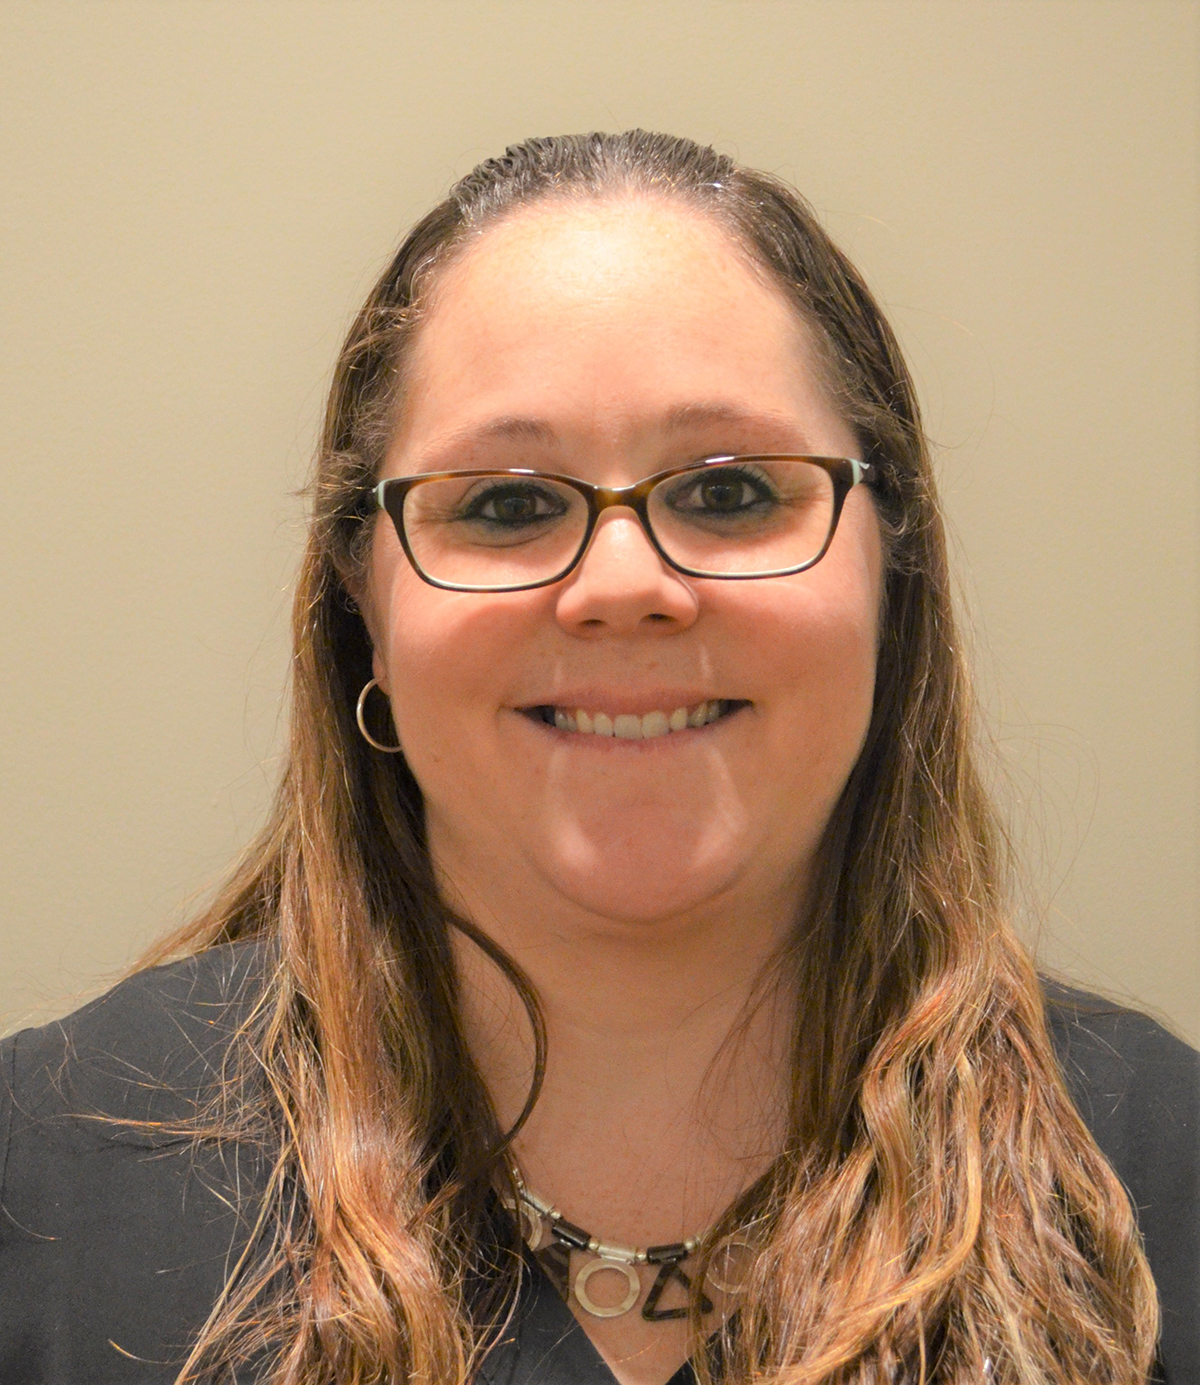 Student starts final rotation at Southwest Healthcare Services